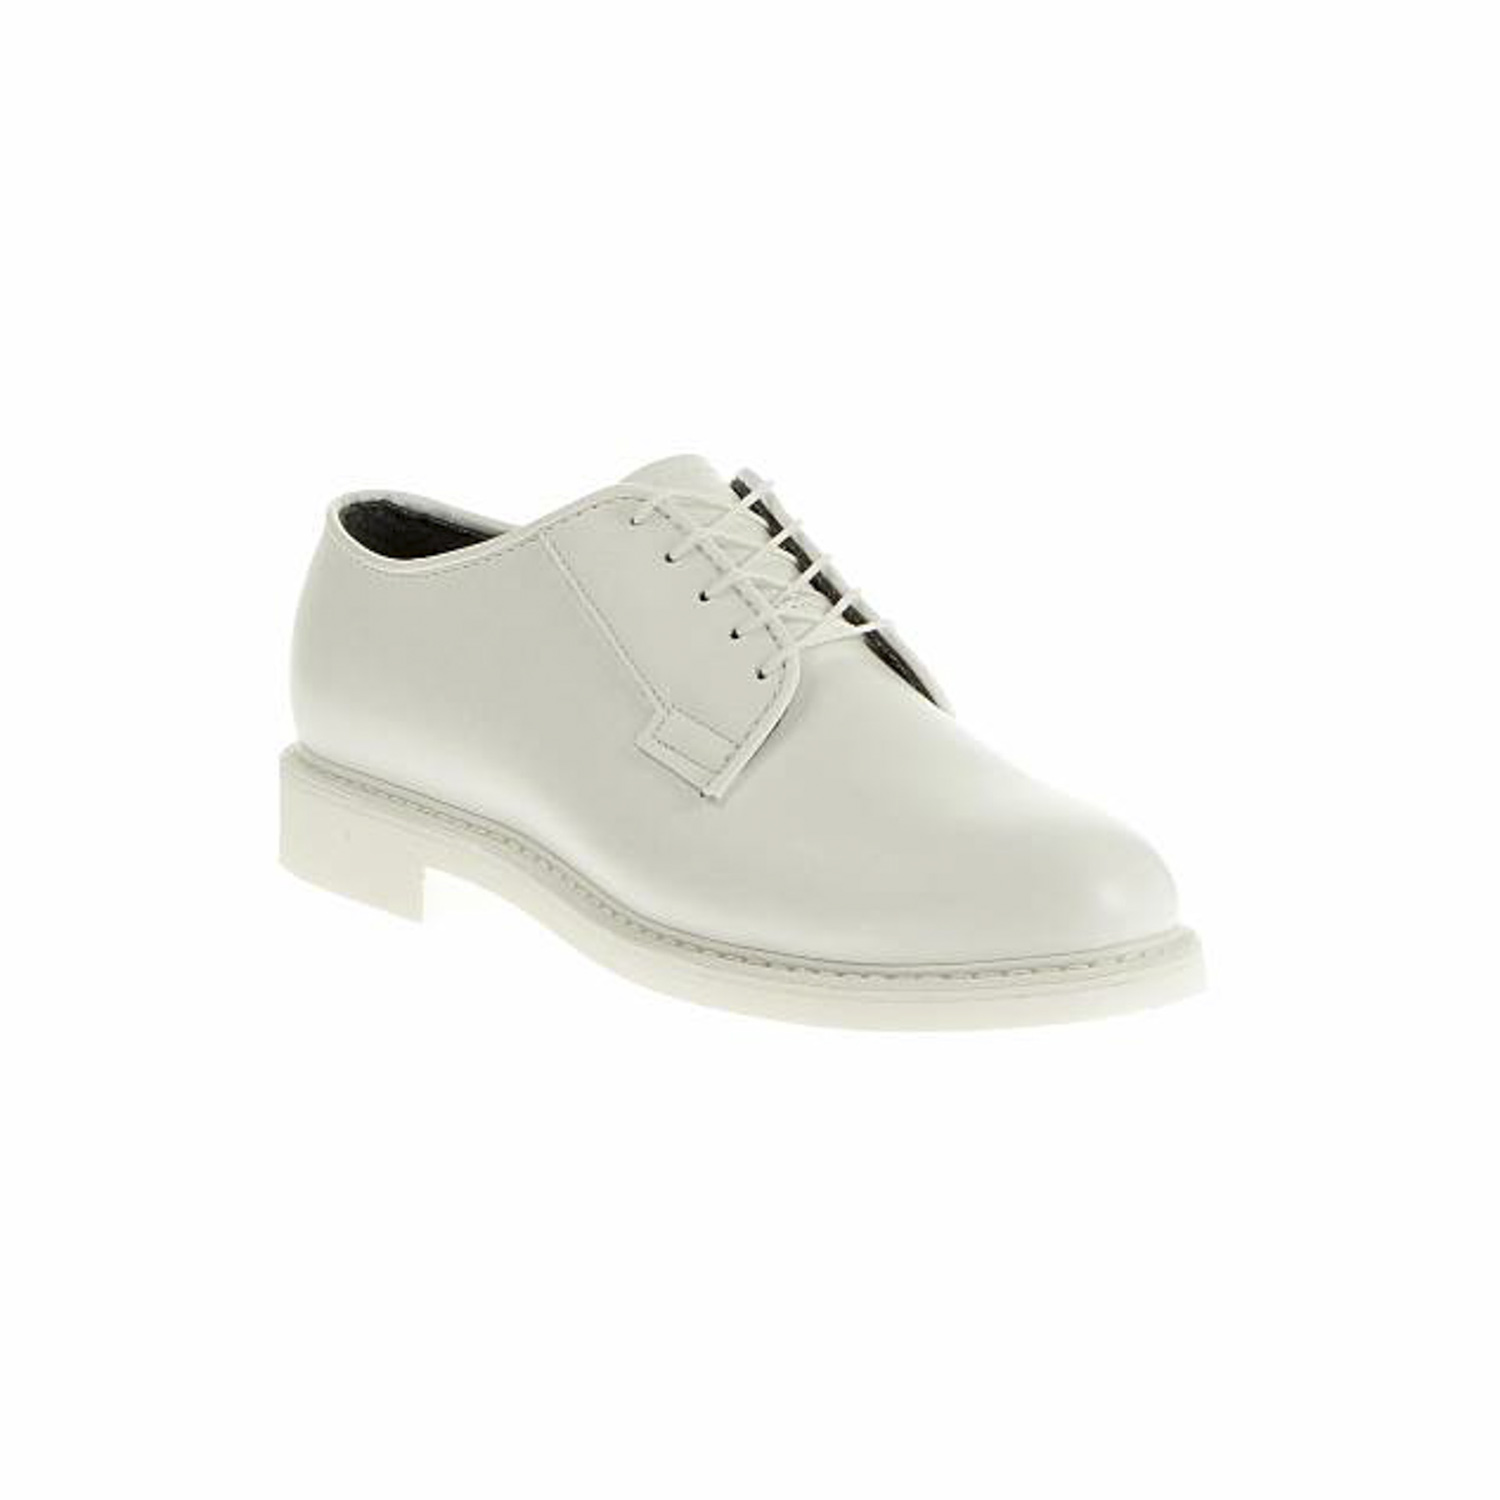 Bates Lites White Leather Dress Oxford